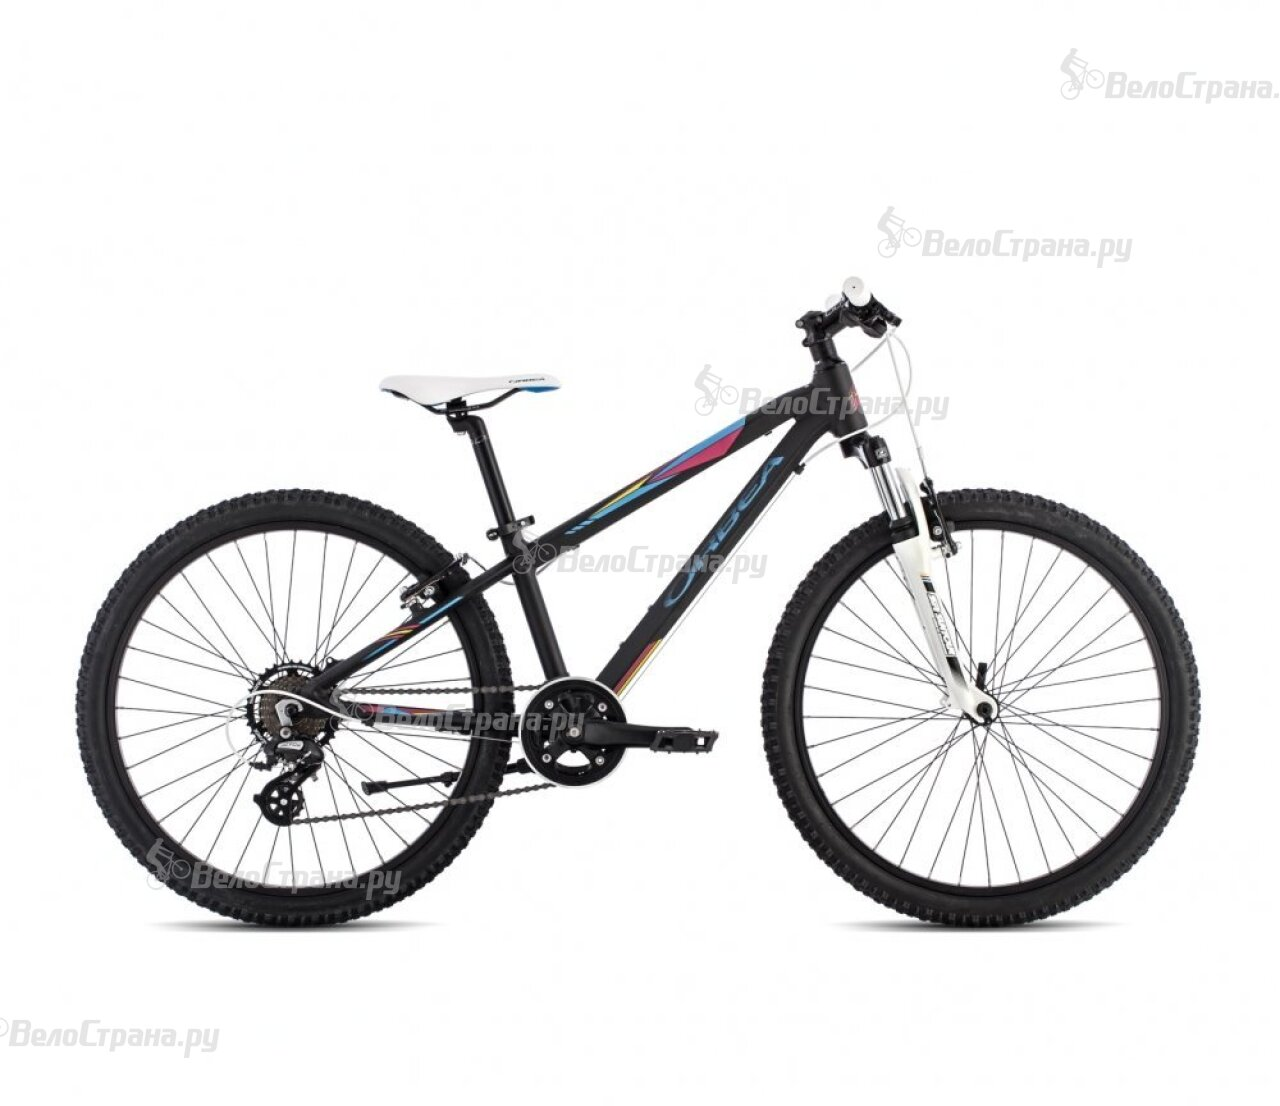 Велосипед Orbea Mx 24 Xc (2014) new original xc e8ad updated to xc e8ad h 14bit 8 ai plc expansion modules